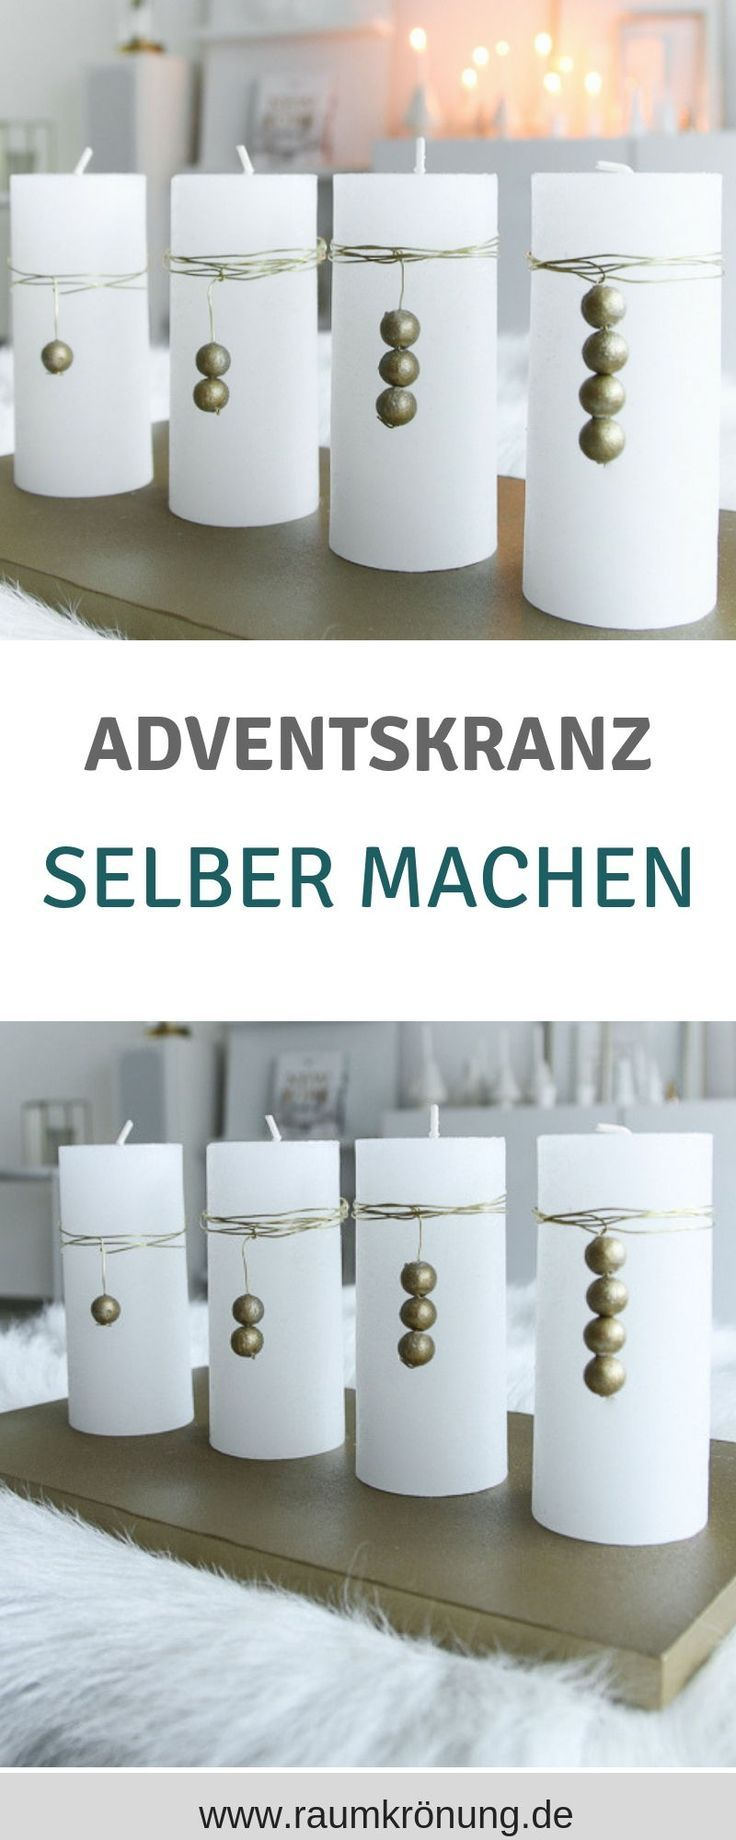 Adventskranz, Adventskranz Alternativen, adventskranz selber machen, adventskran